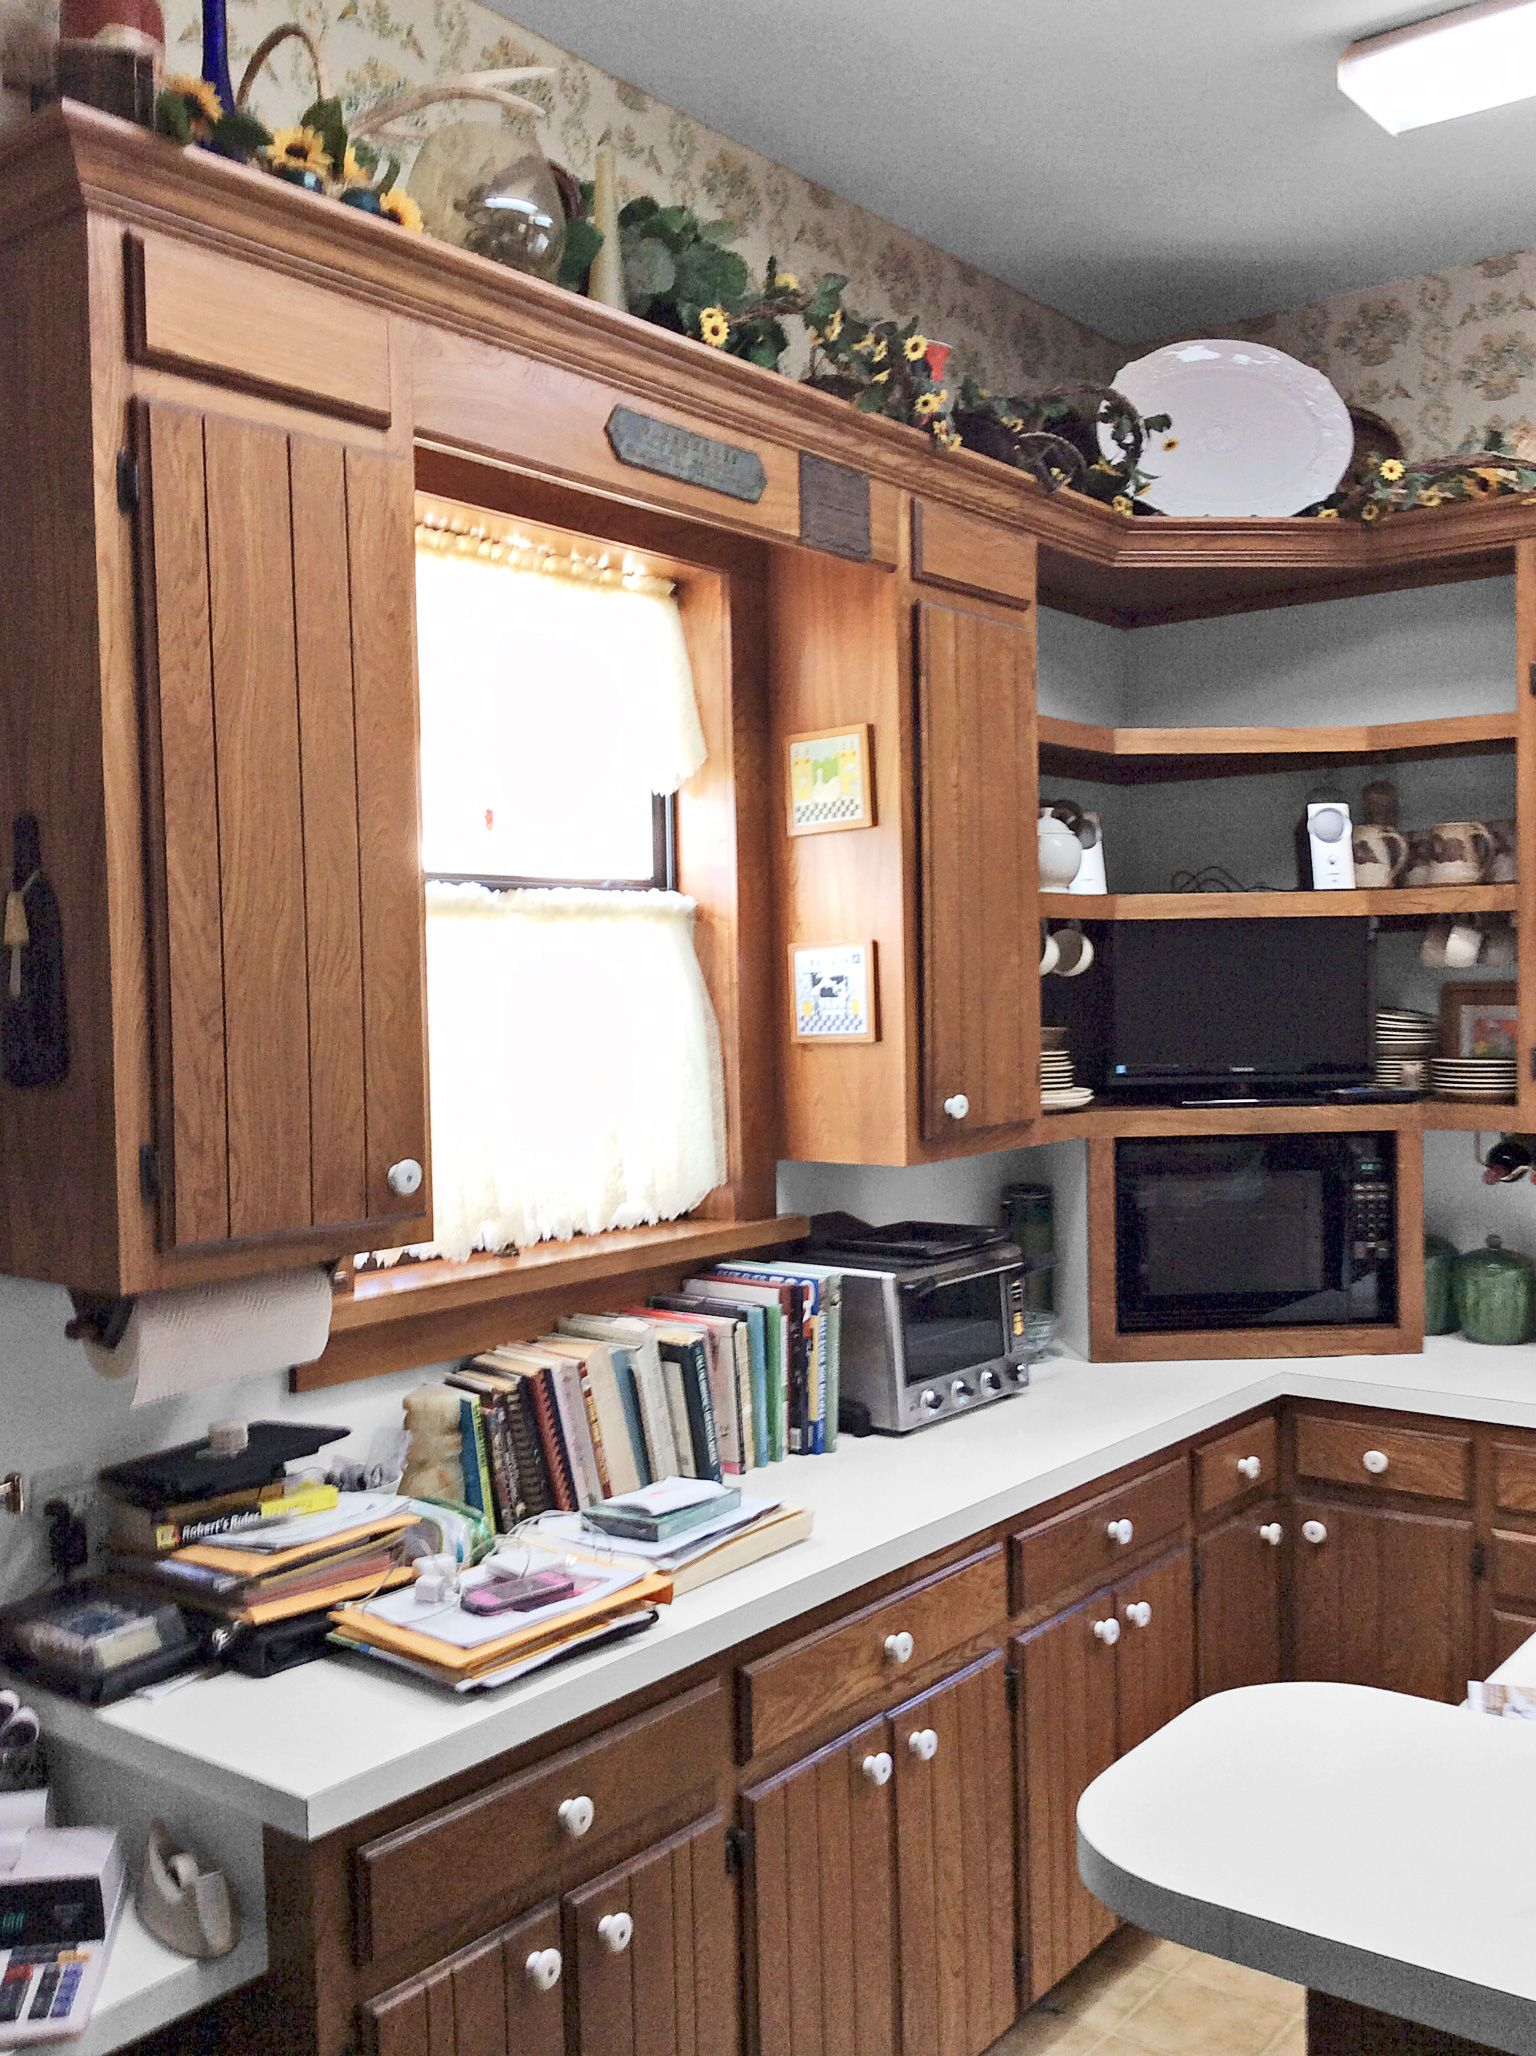 Before And After A Kitchen Well Done Green Kitchen Cabinets Best Kitchen Cabinets Kitchen Appliance Storage